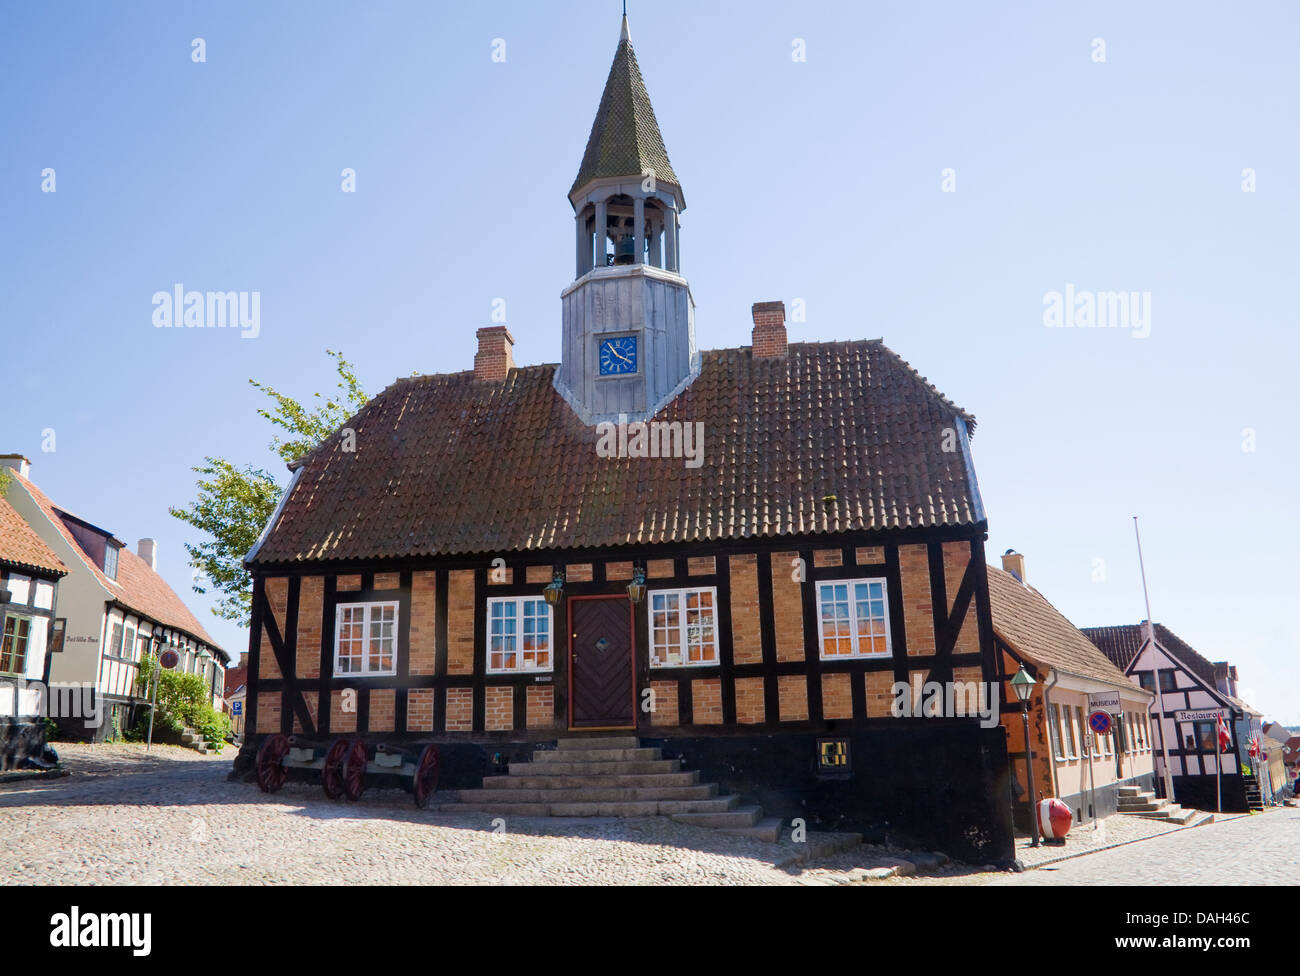 Ebeltoft Denmark EU Town Hall constructed 1789 with church bell tower in cobbled town centre square now museum centuries Stock Photo